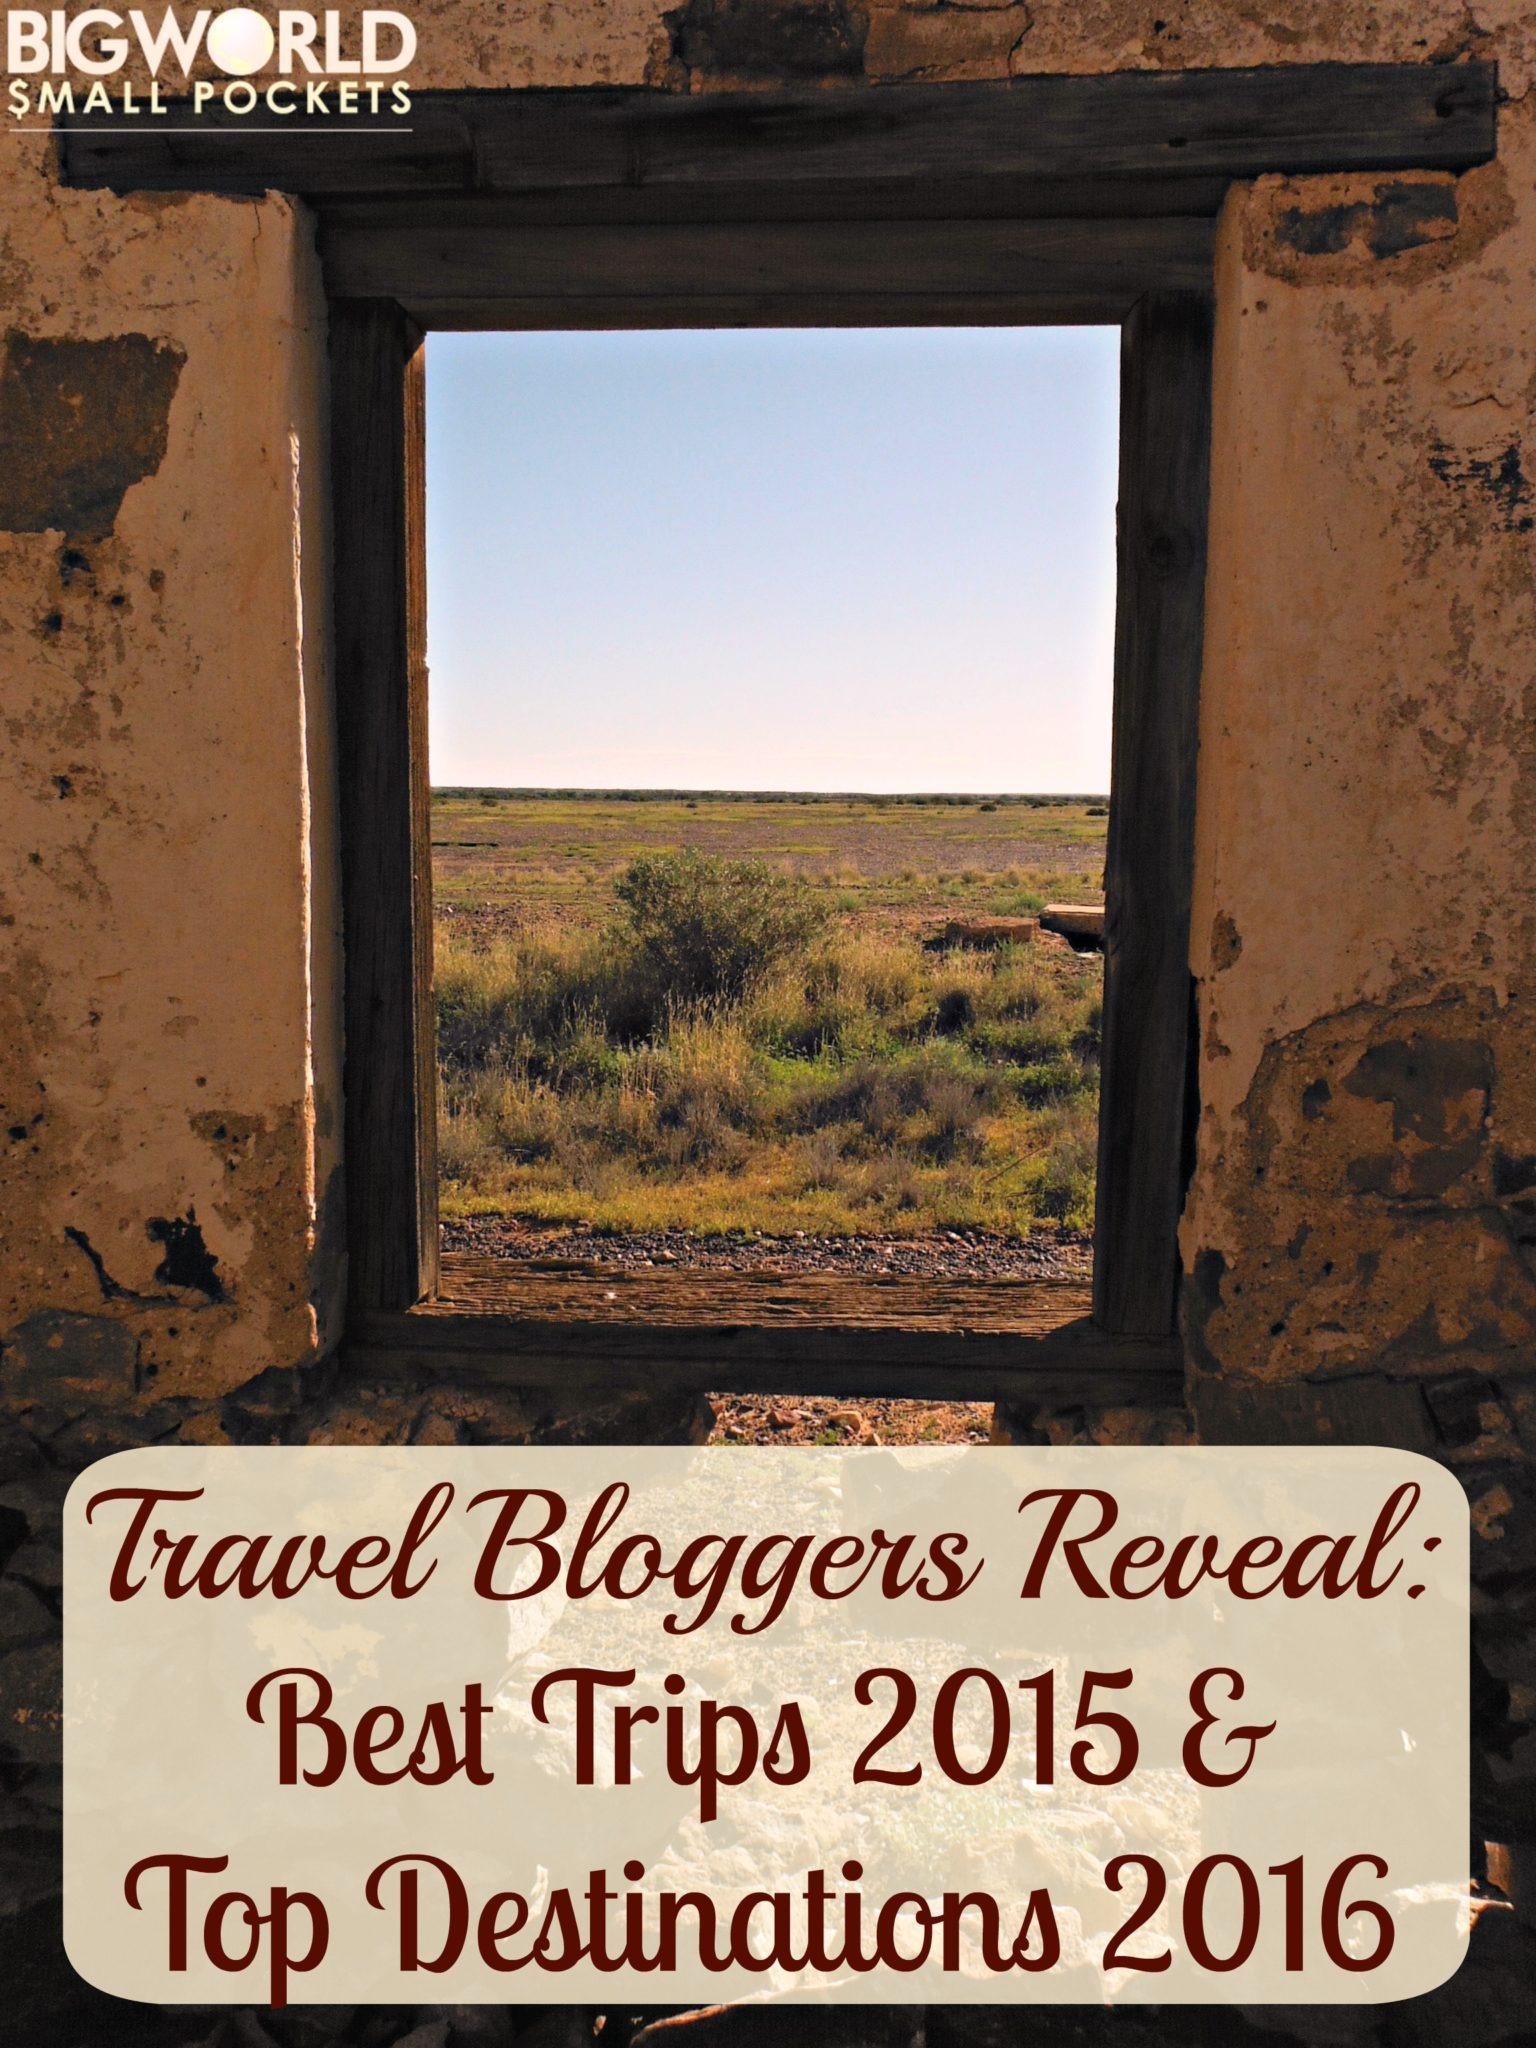 Travel Bloggers Reveal: Best Trips 2015 & Top Destinations 2016 {Big World Small Pockets}